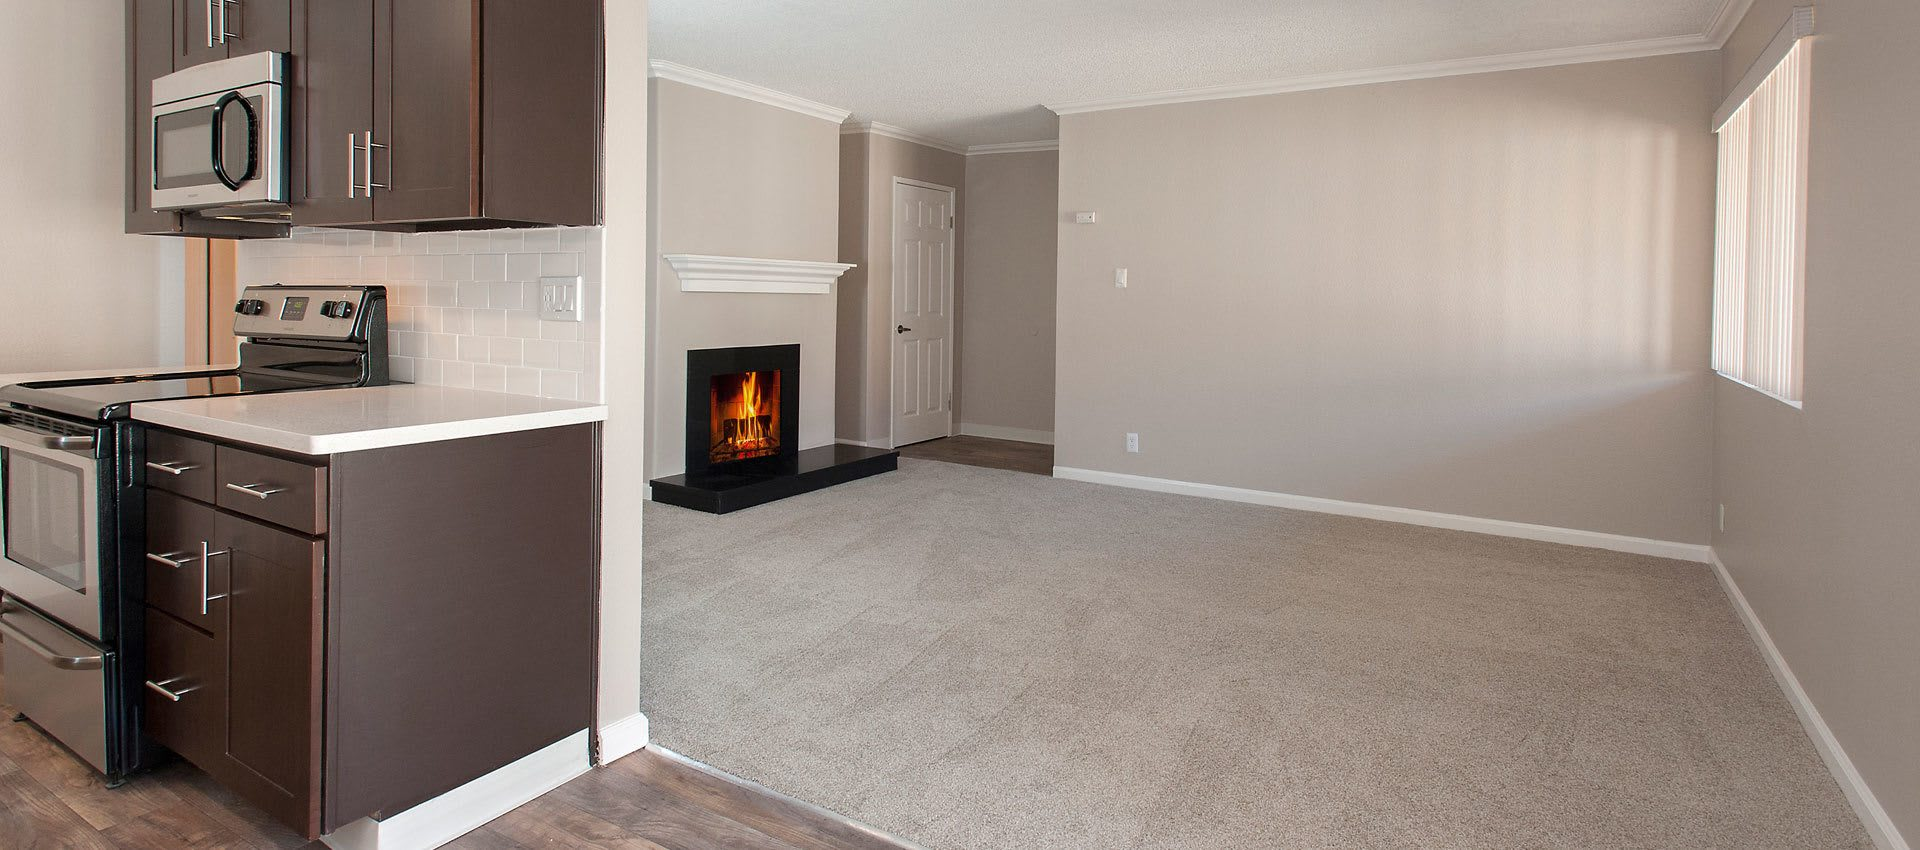 Spacious room at La Valencia Apartment Homes in Campbell, California